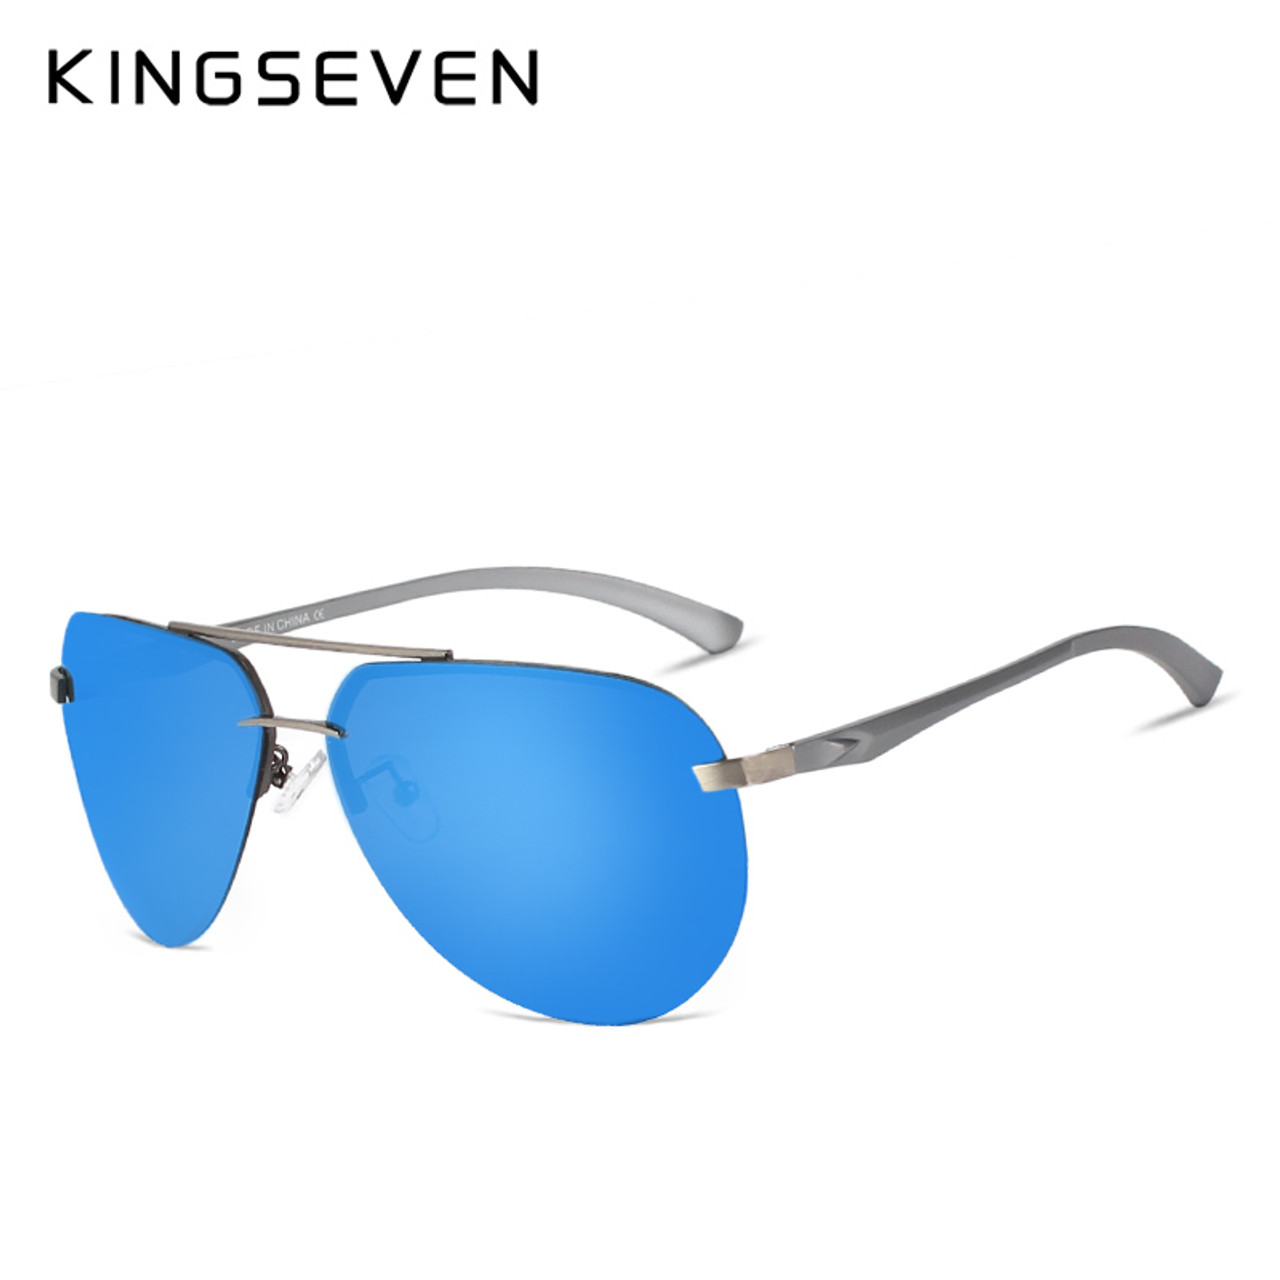 8c474b7a91521 kingseven Aluminum magnesium HD polarized aviation Sunglasses women men  driving sun Glasses vintage oculos de sol ...